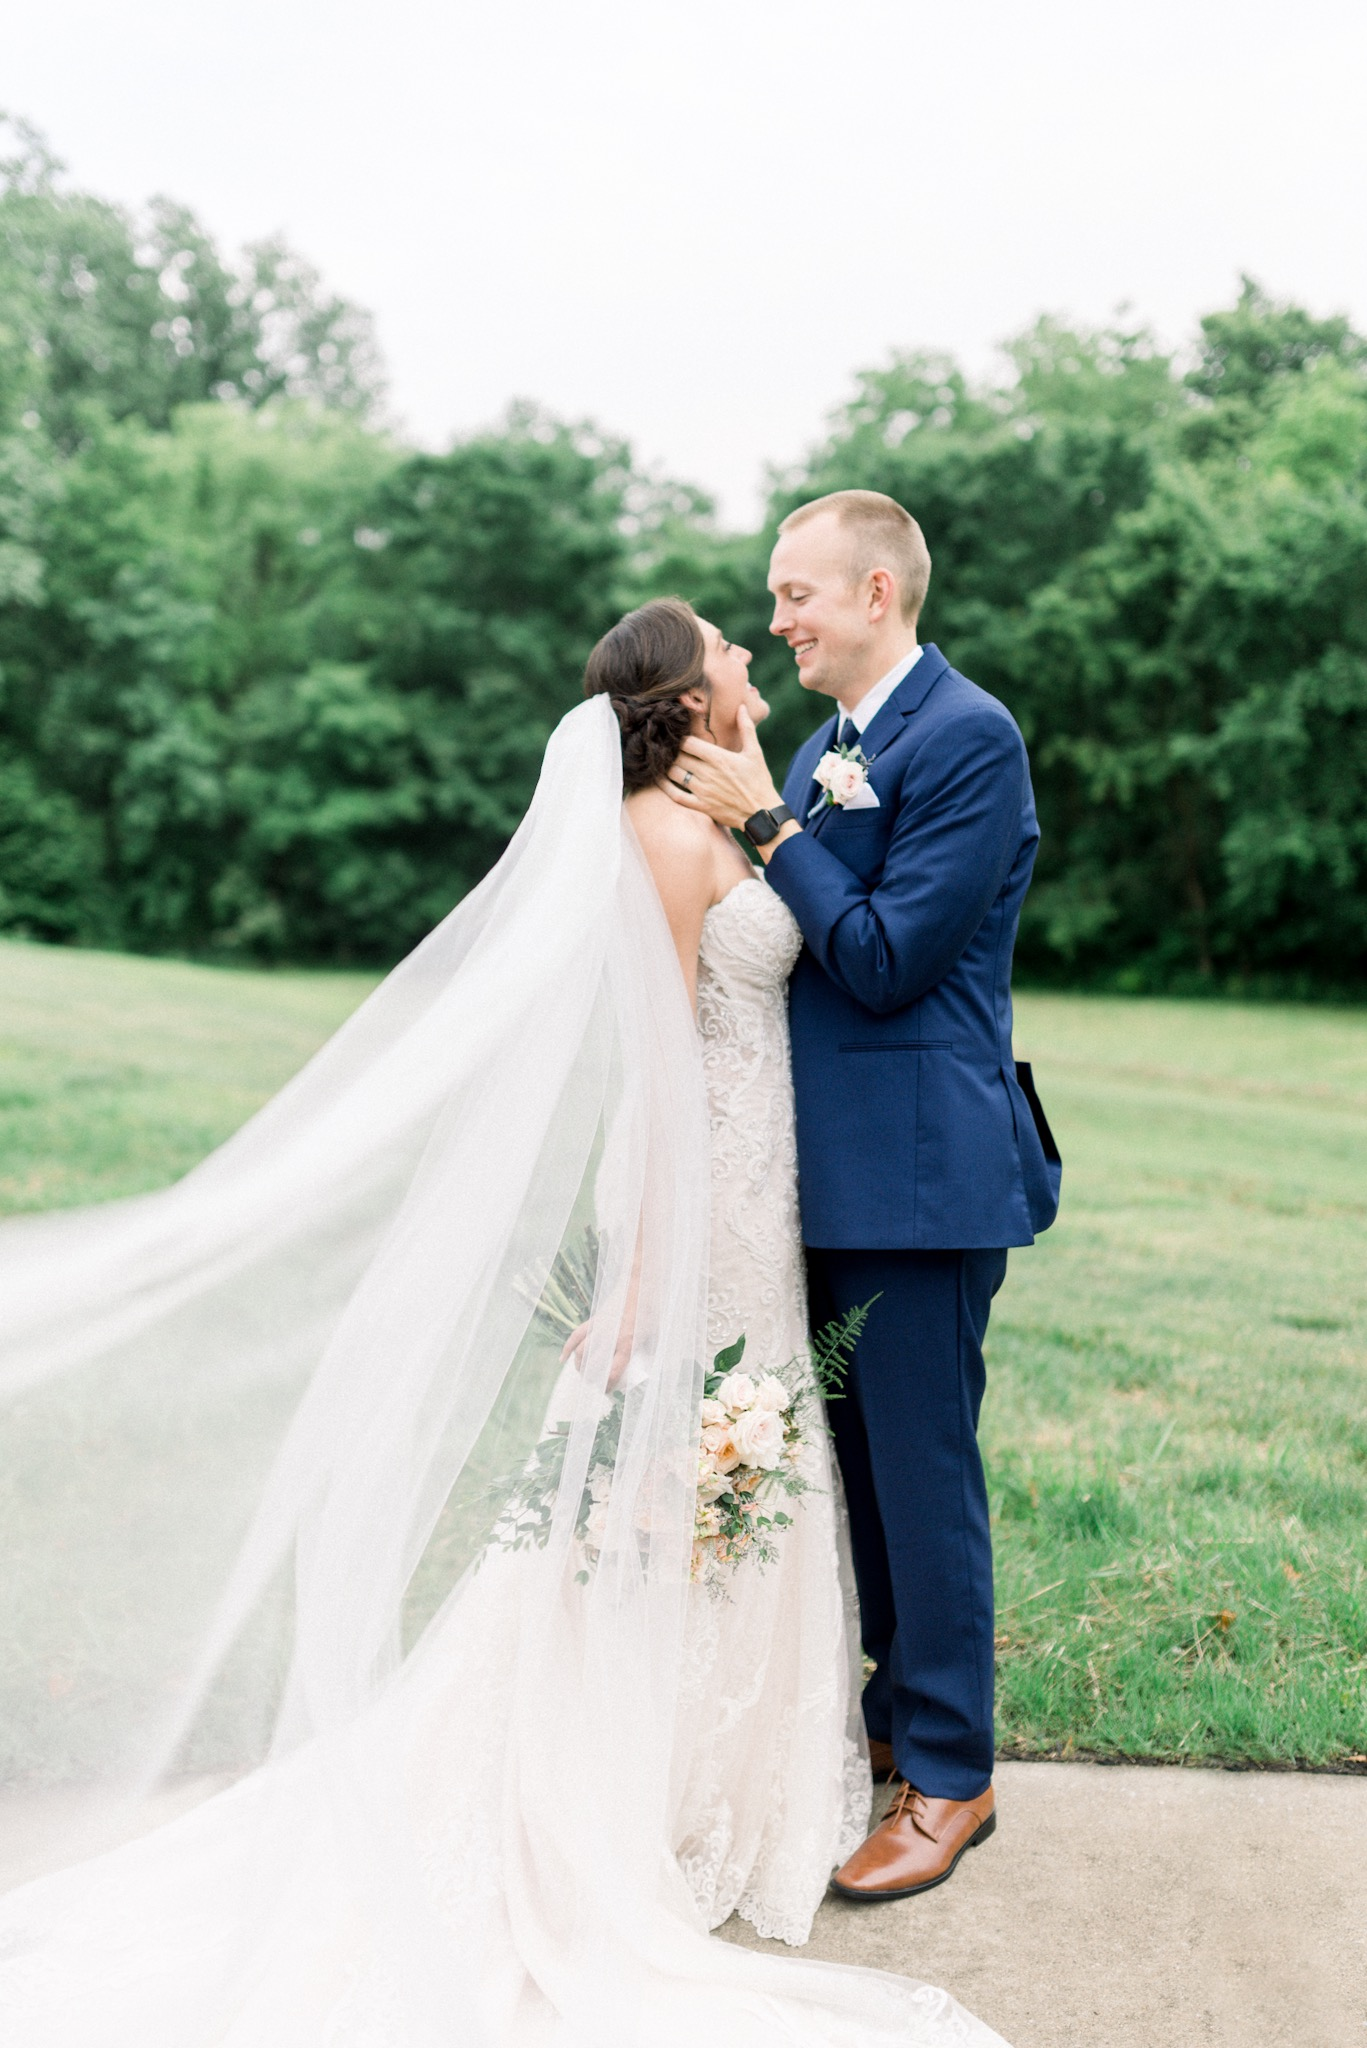 Kait + Jon | An Elegant Rustic Wedding at the Loft on Isanogel in Muncie, IN | Indianapolis Wedding Photographers